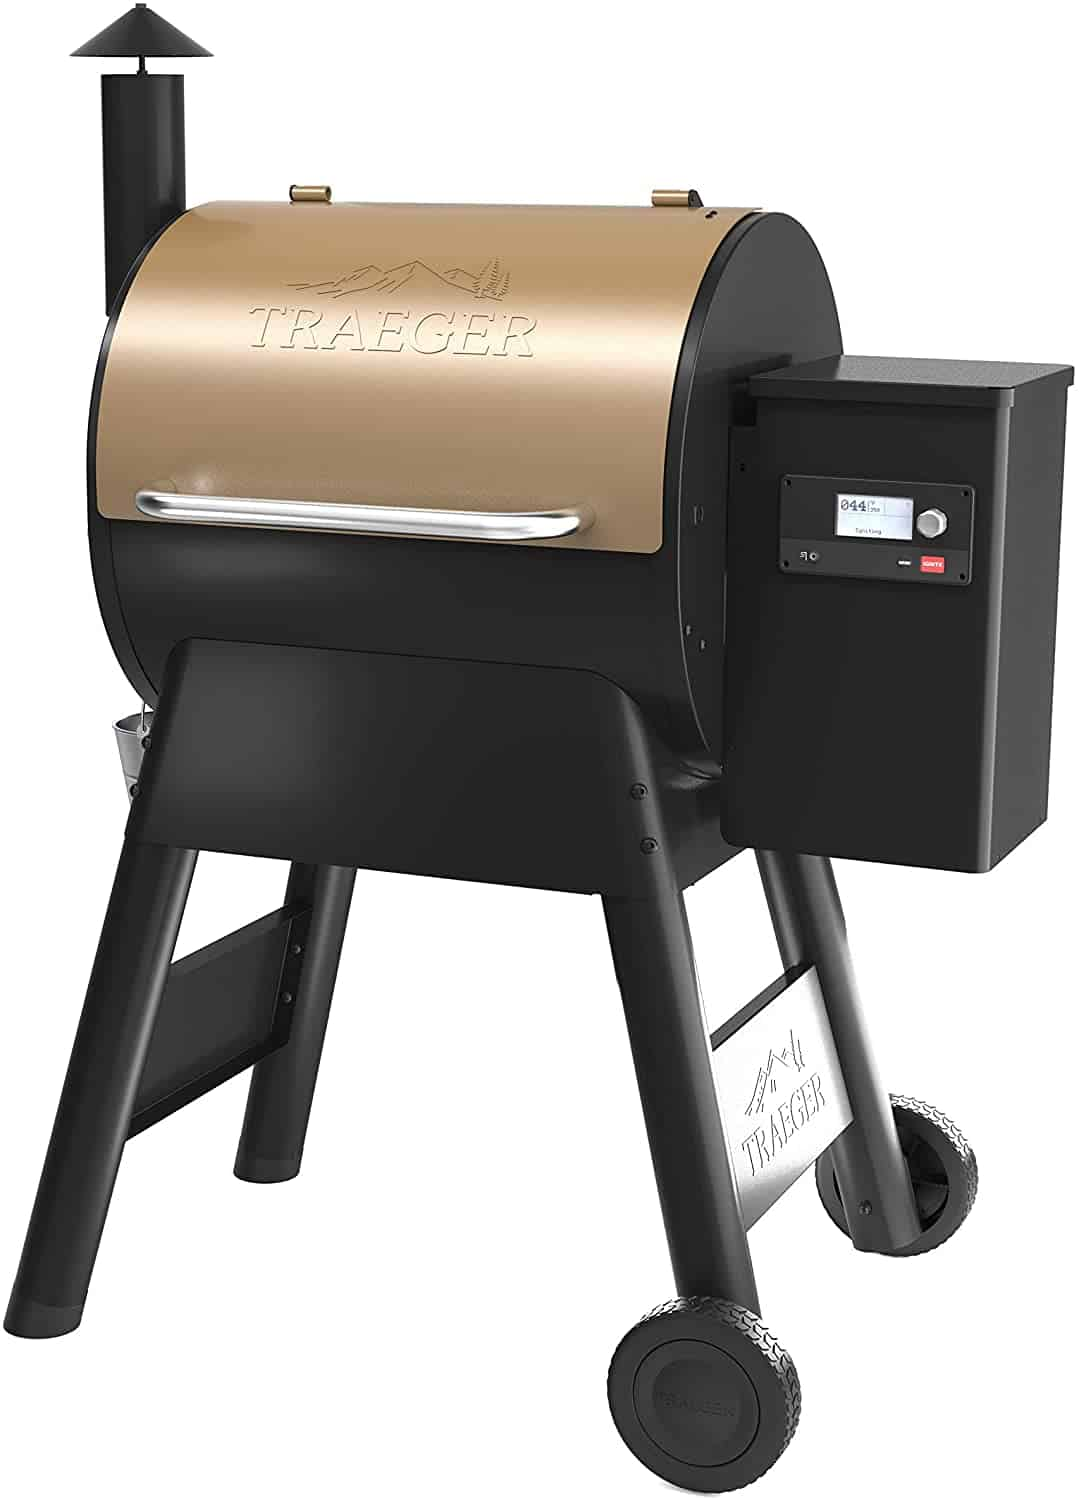 Newest Traeger Grill: Traeger Pro 575